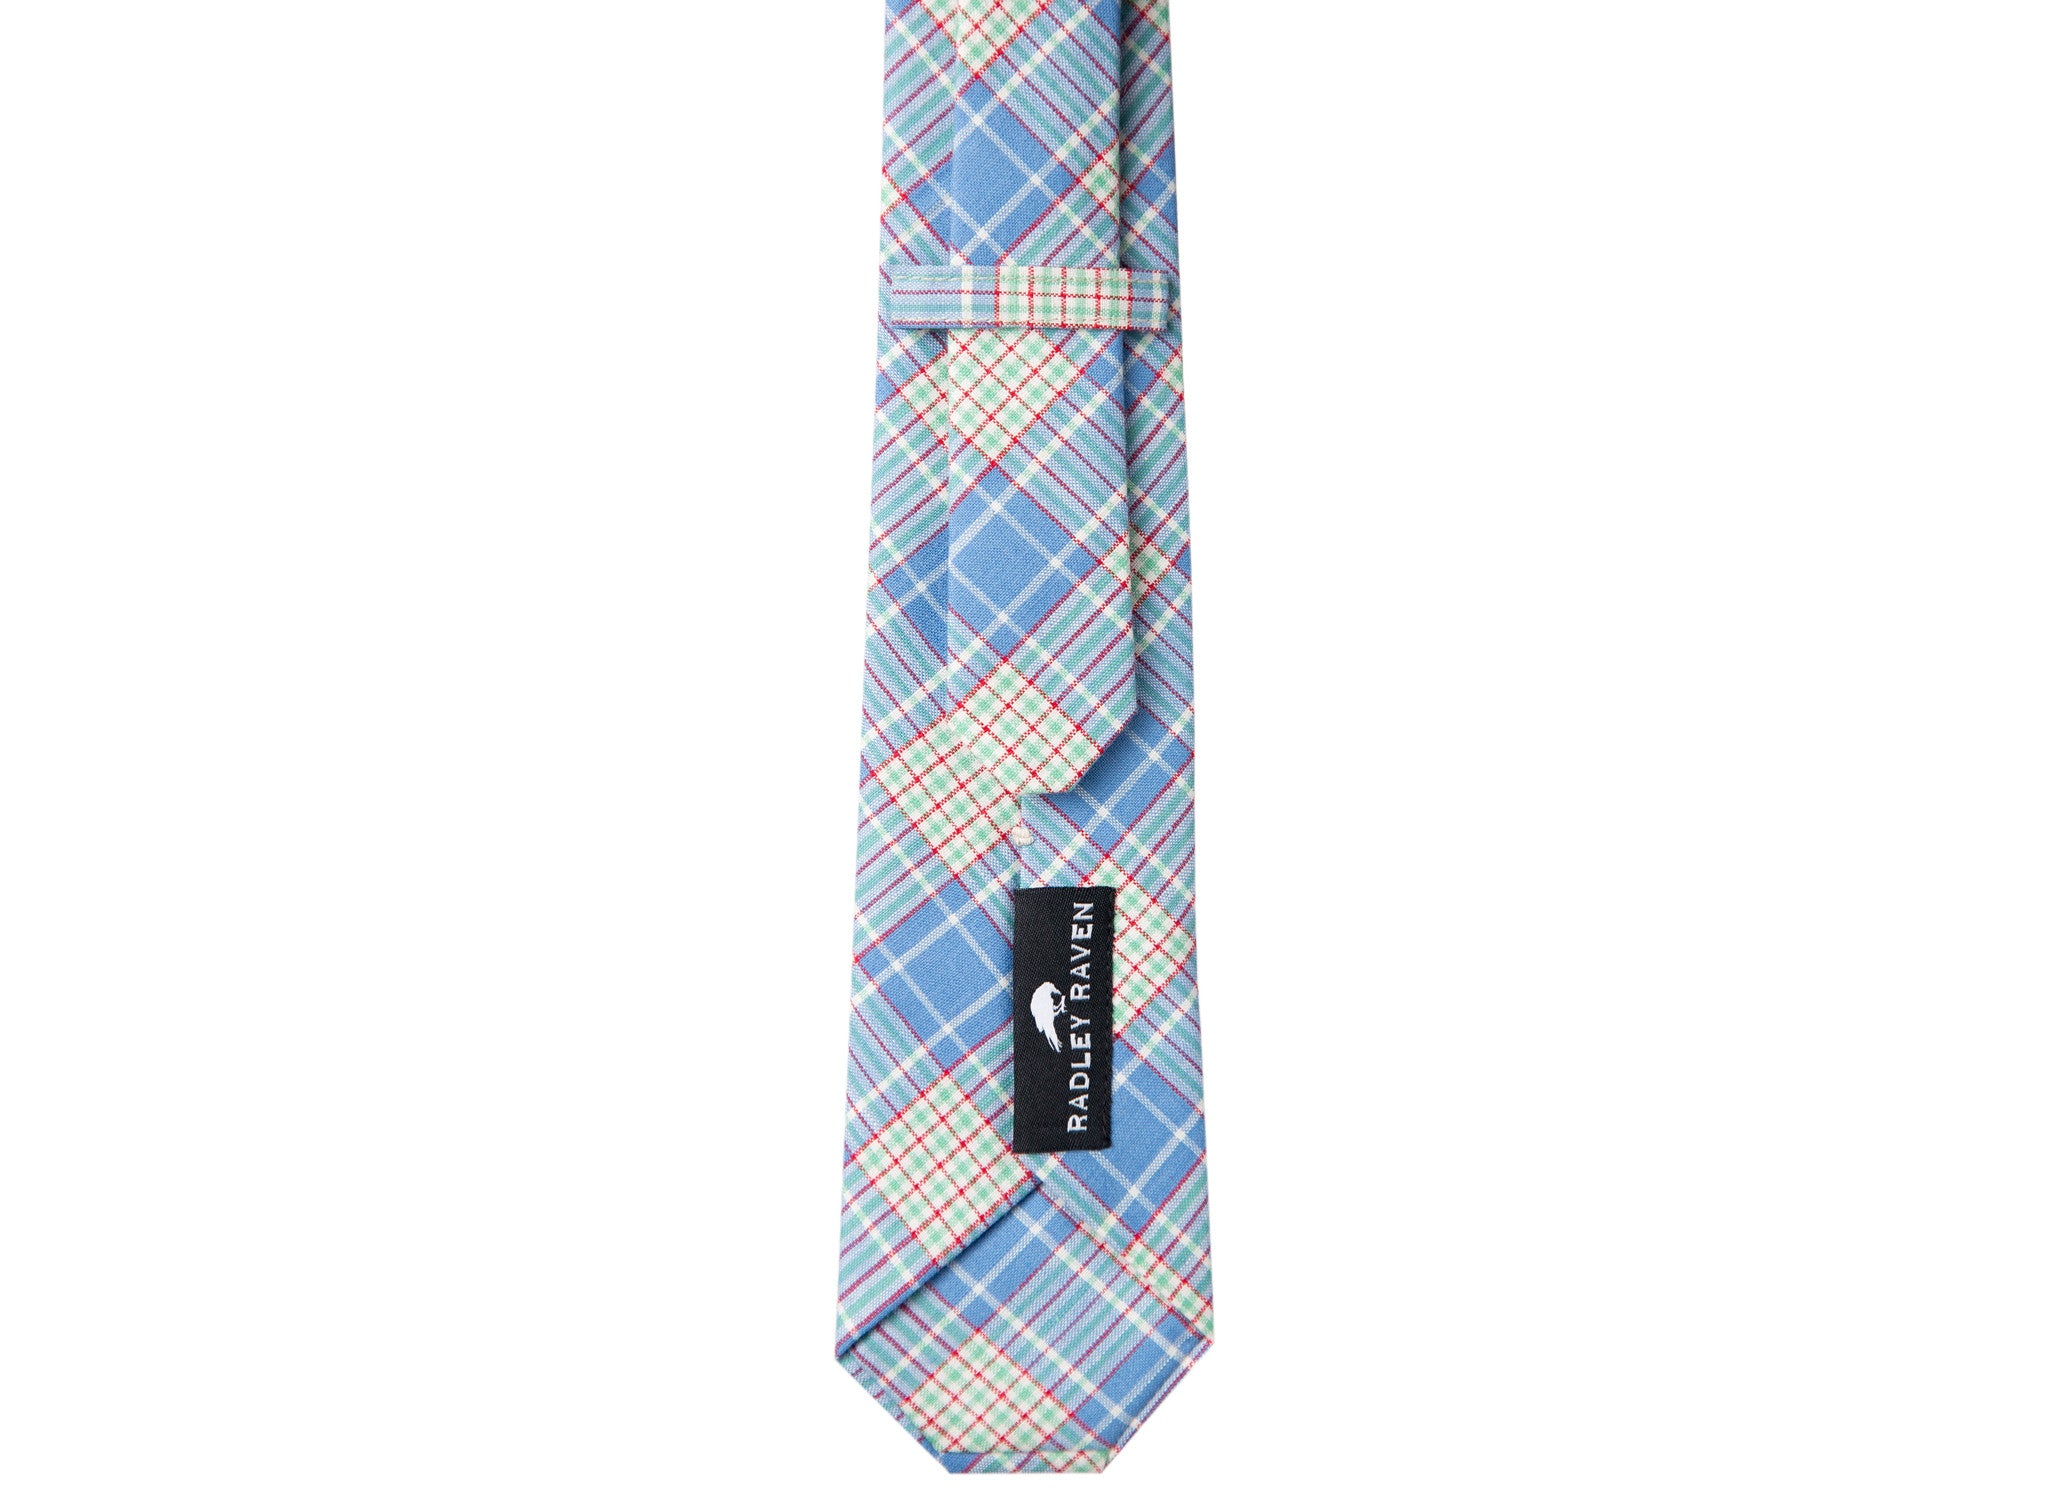 Banned in Britain Necktie